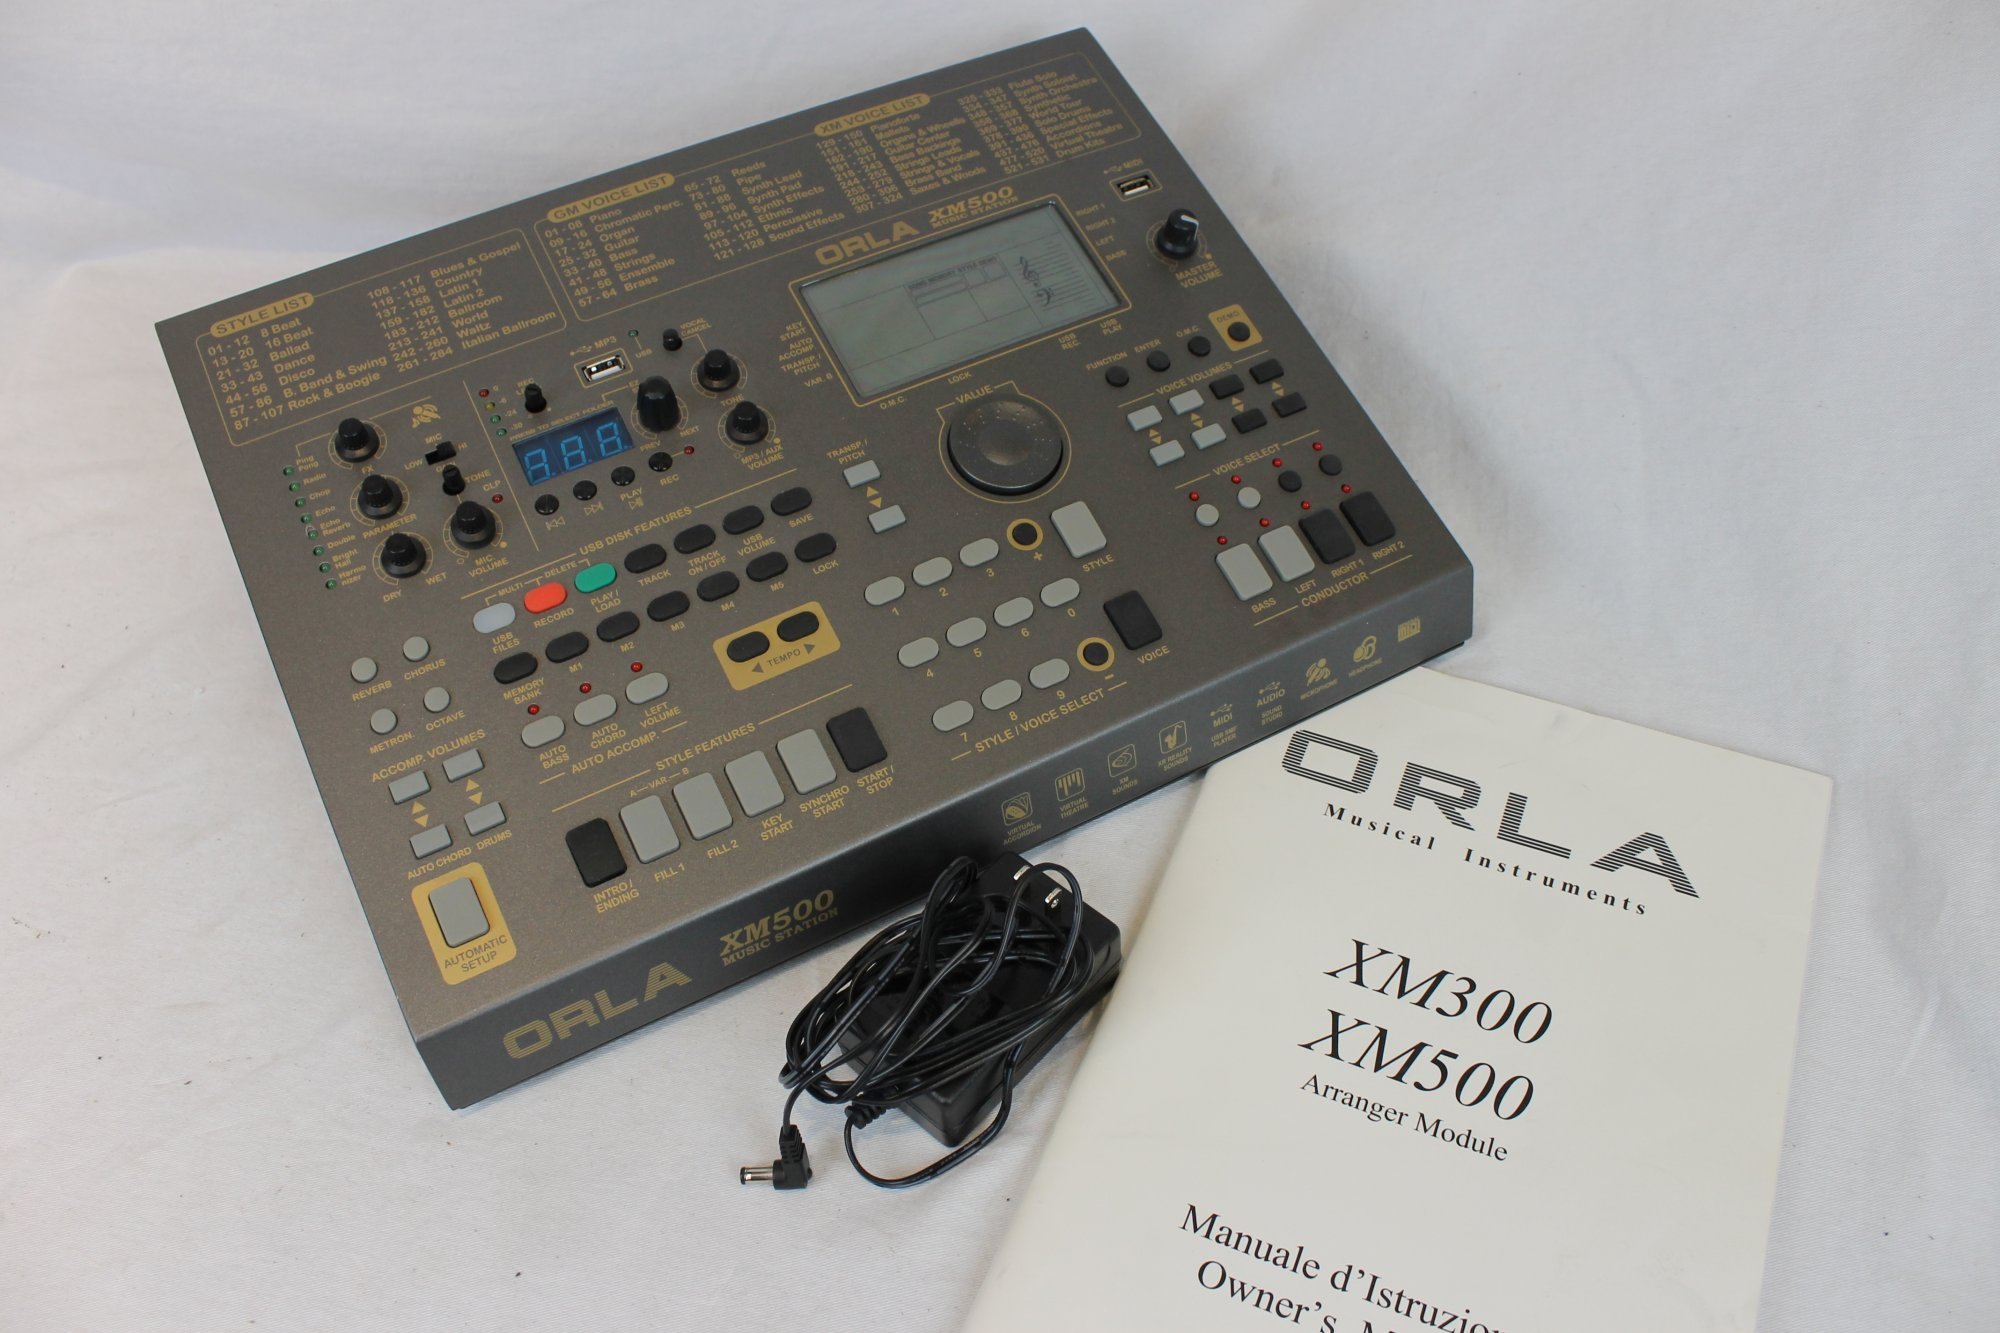 4195 - Orla XM500 Music Station Arranger and Sound Module